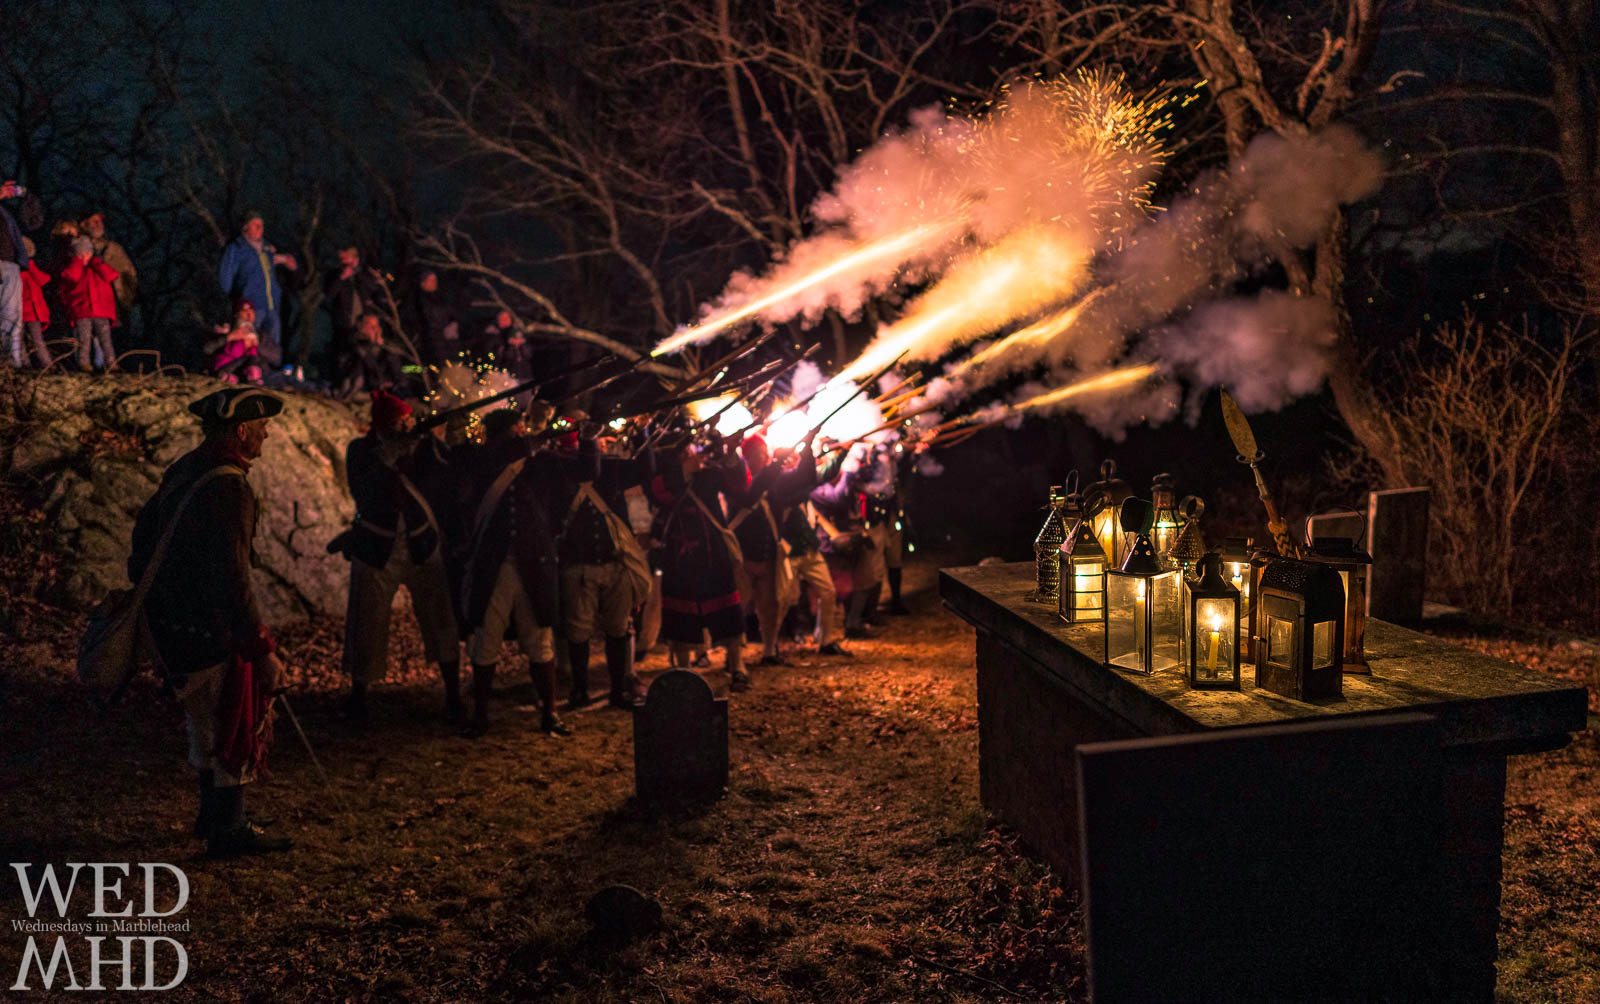 General John Glover was honored tonight on the anniversary of his death with a march of his regiment from Old Town House to Old Burial Hill